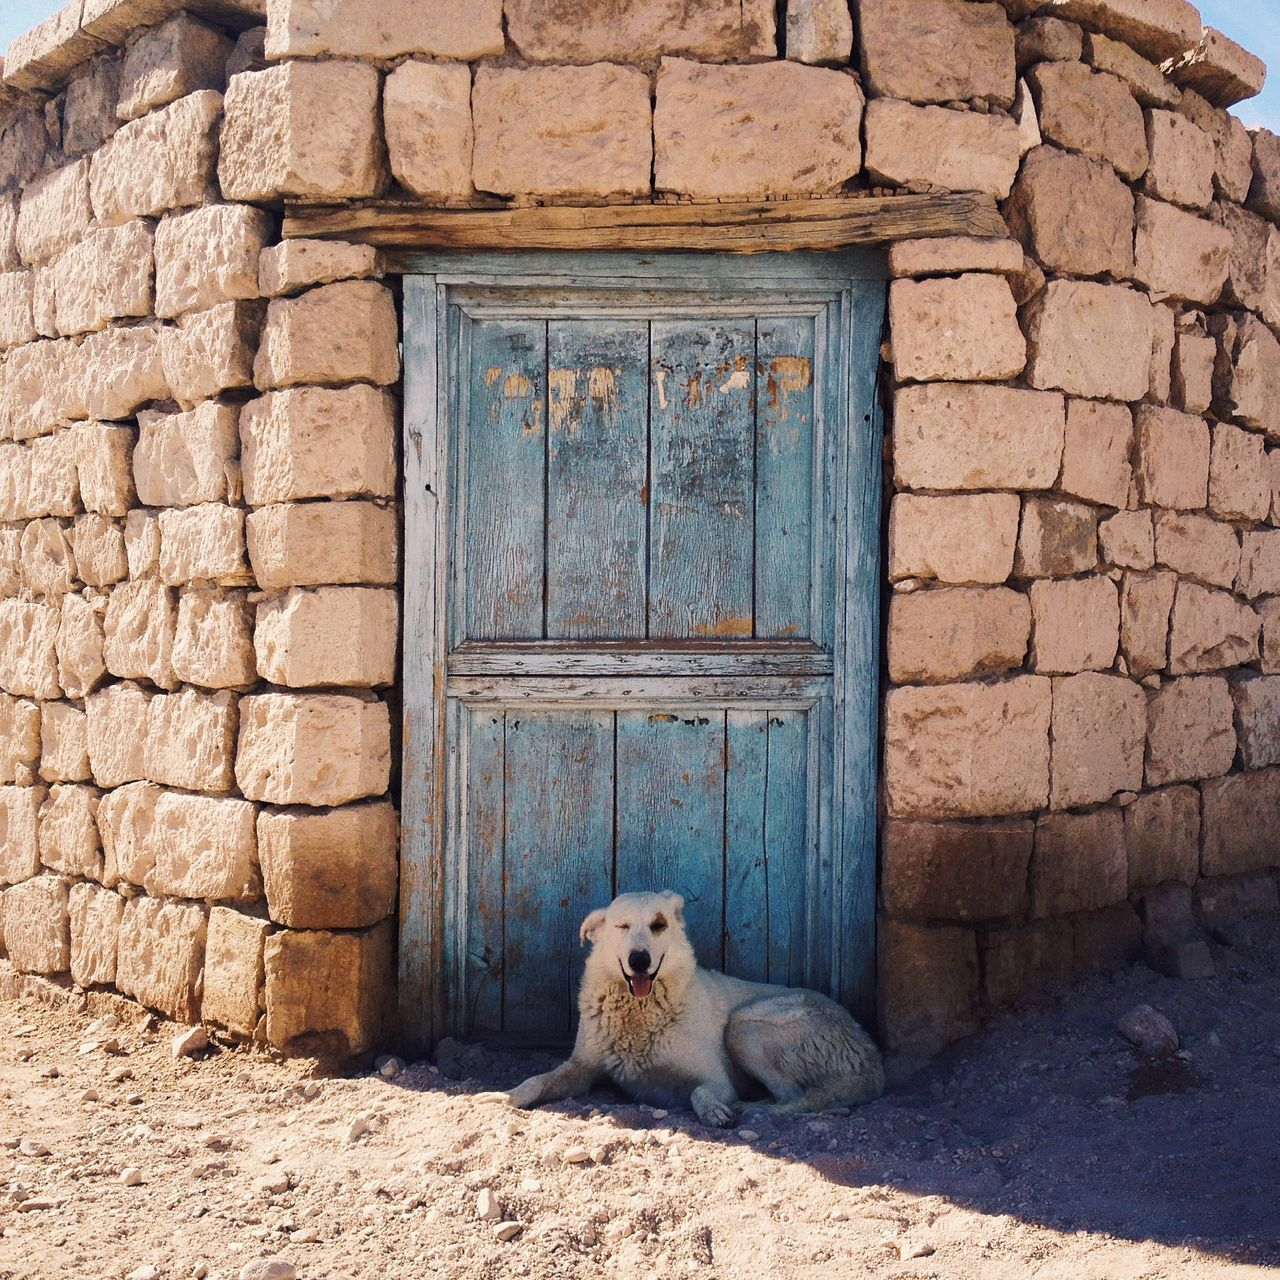 The Gatekeeper Adapted To The City Animal Themes Architecture Brick Wall Building Exterior Built Structure Close-up Day Dog Domestic Animals Domestic Cat House Mammal No People One Animal Outdoors Pets Portrait